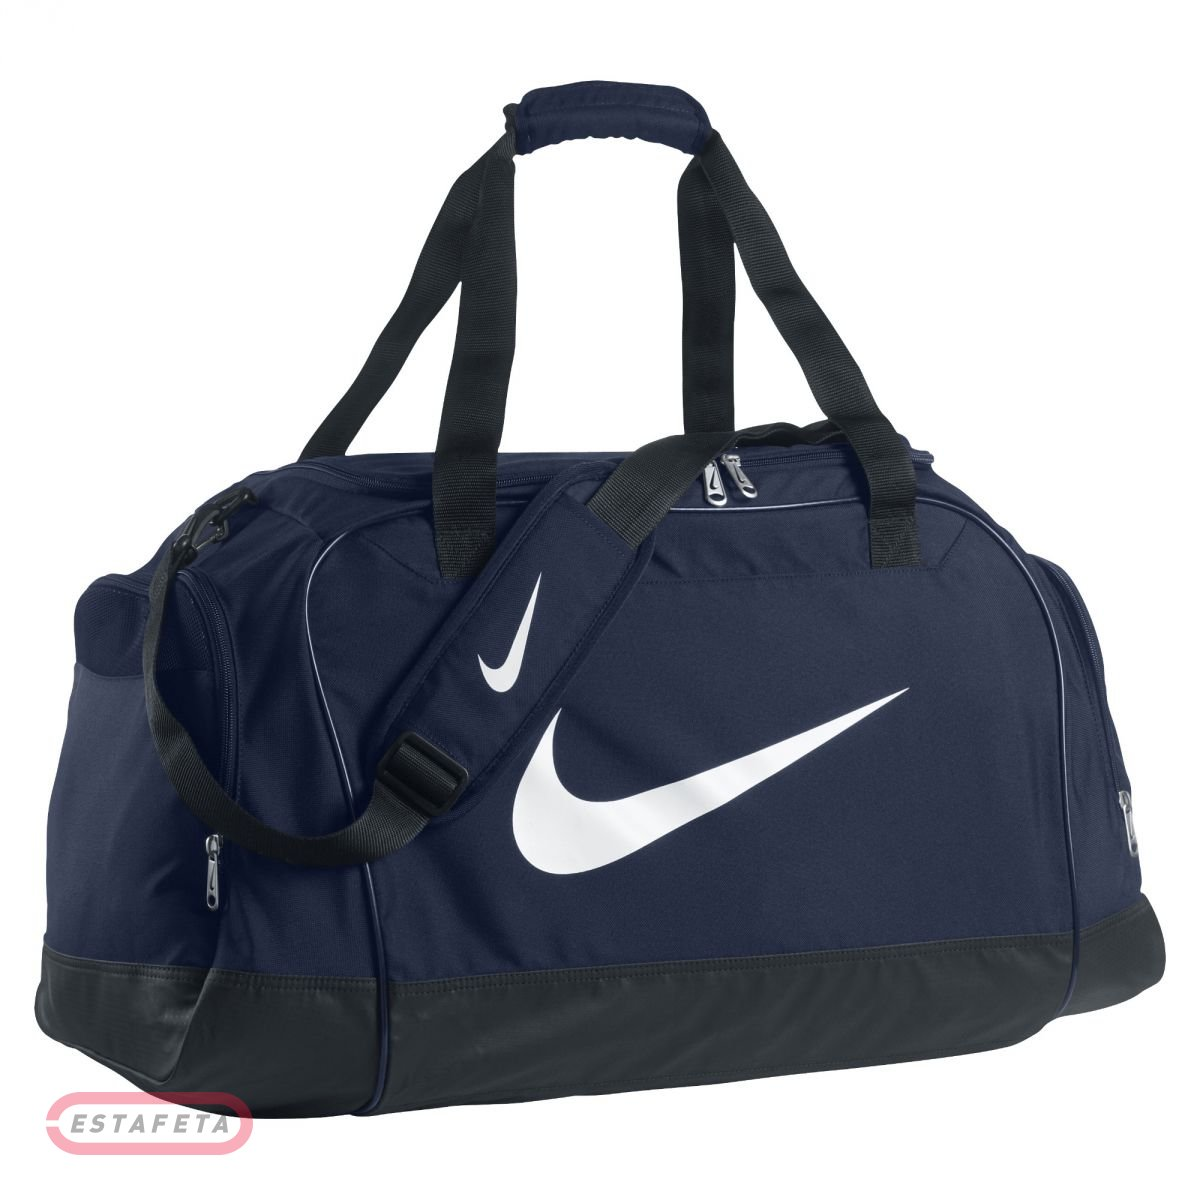 1fa661092017 Сумка NIKE CLUB TEAM LARGE DUFFEL BA3231-472_1 купить | Estafeta.ua